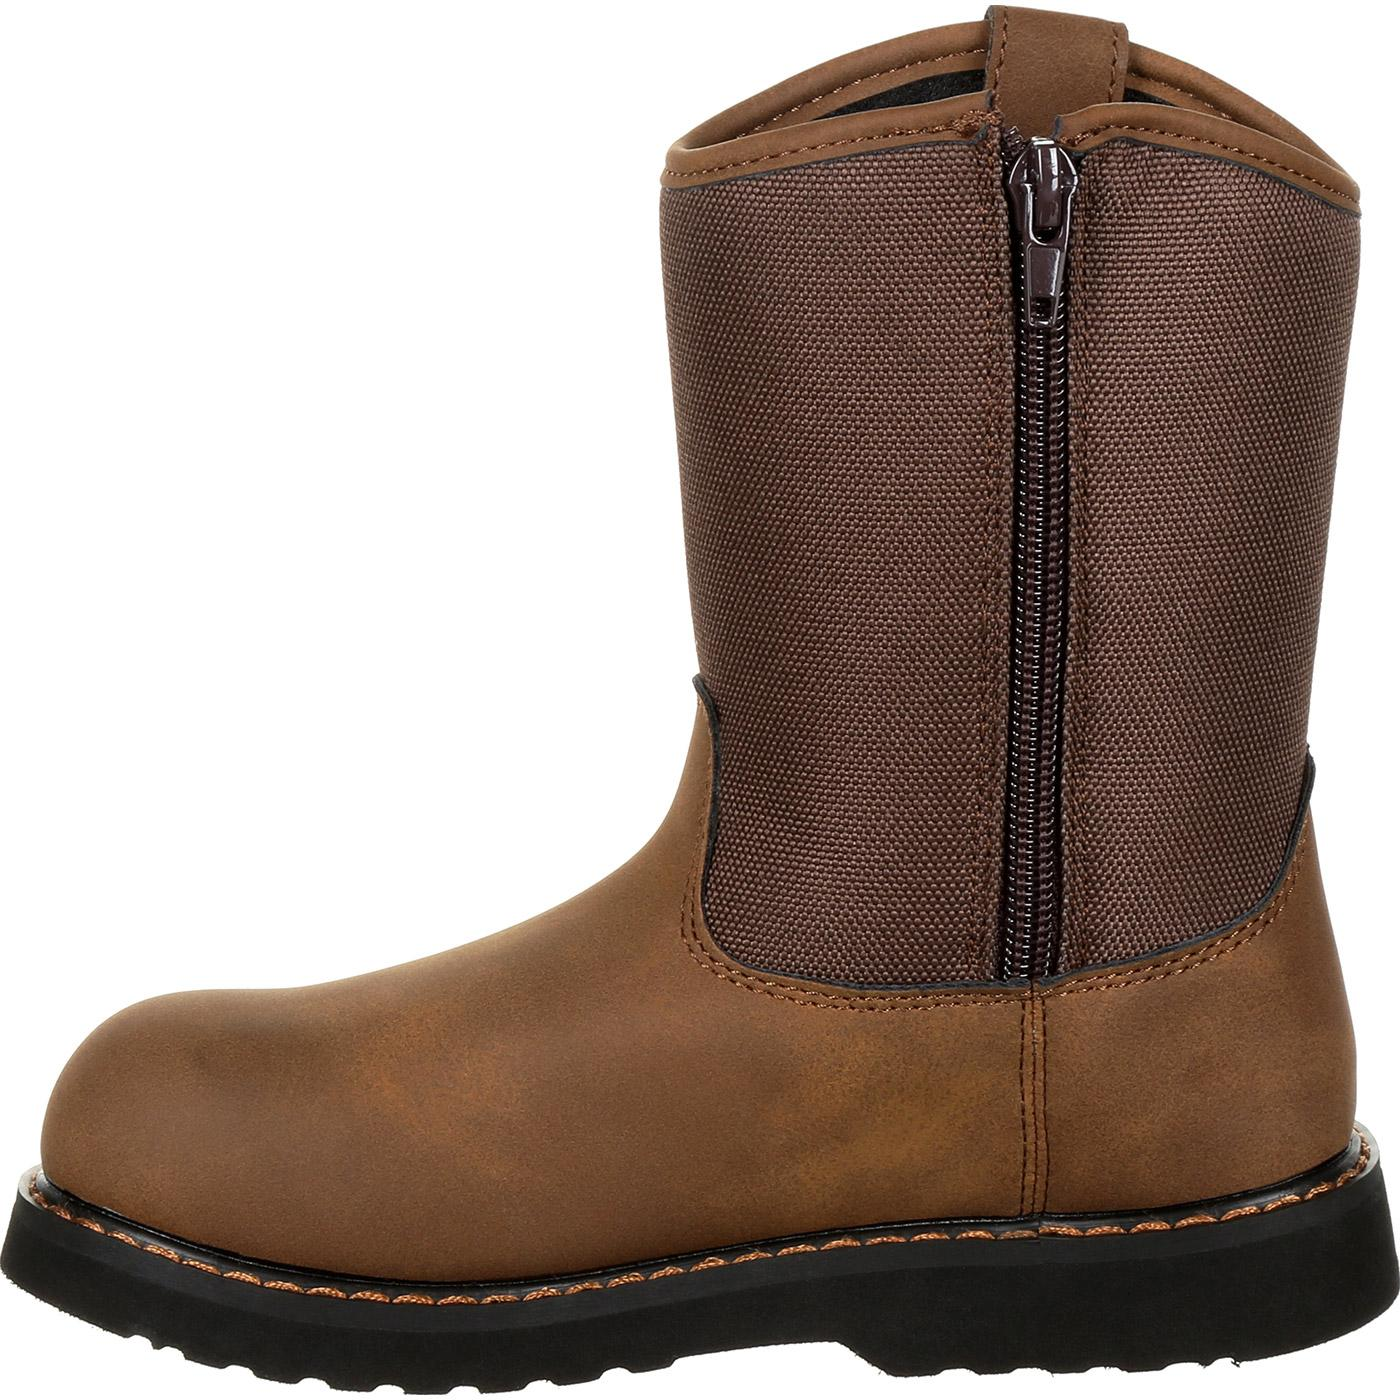 744f2c263c0 Rocky Kids' Lil Ropers Outdoor Boot